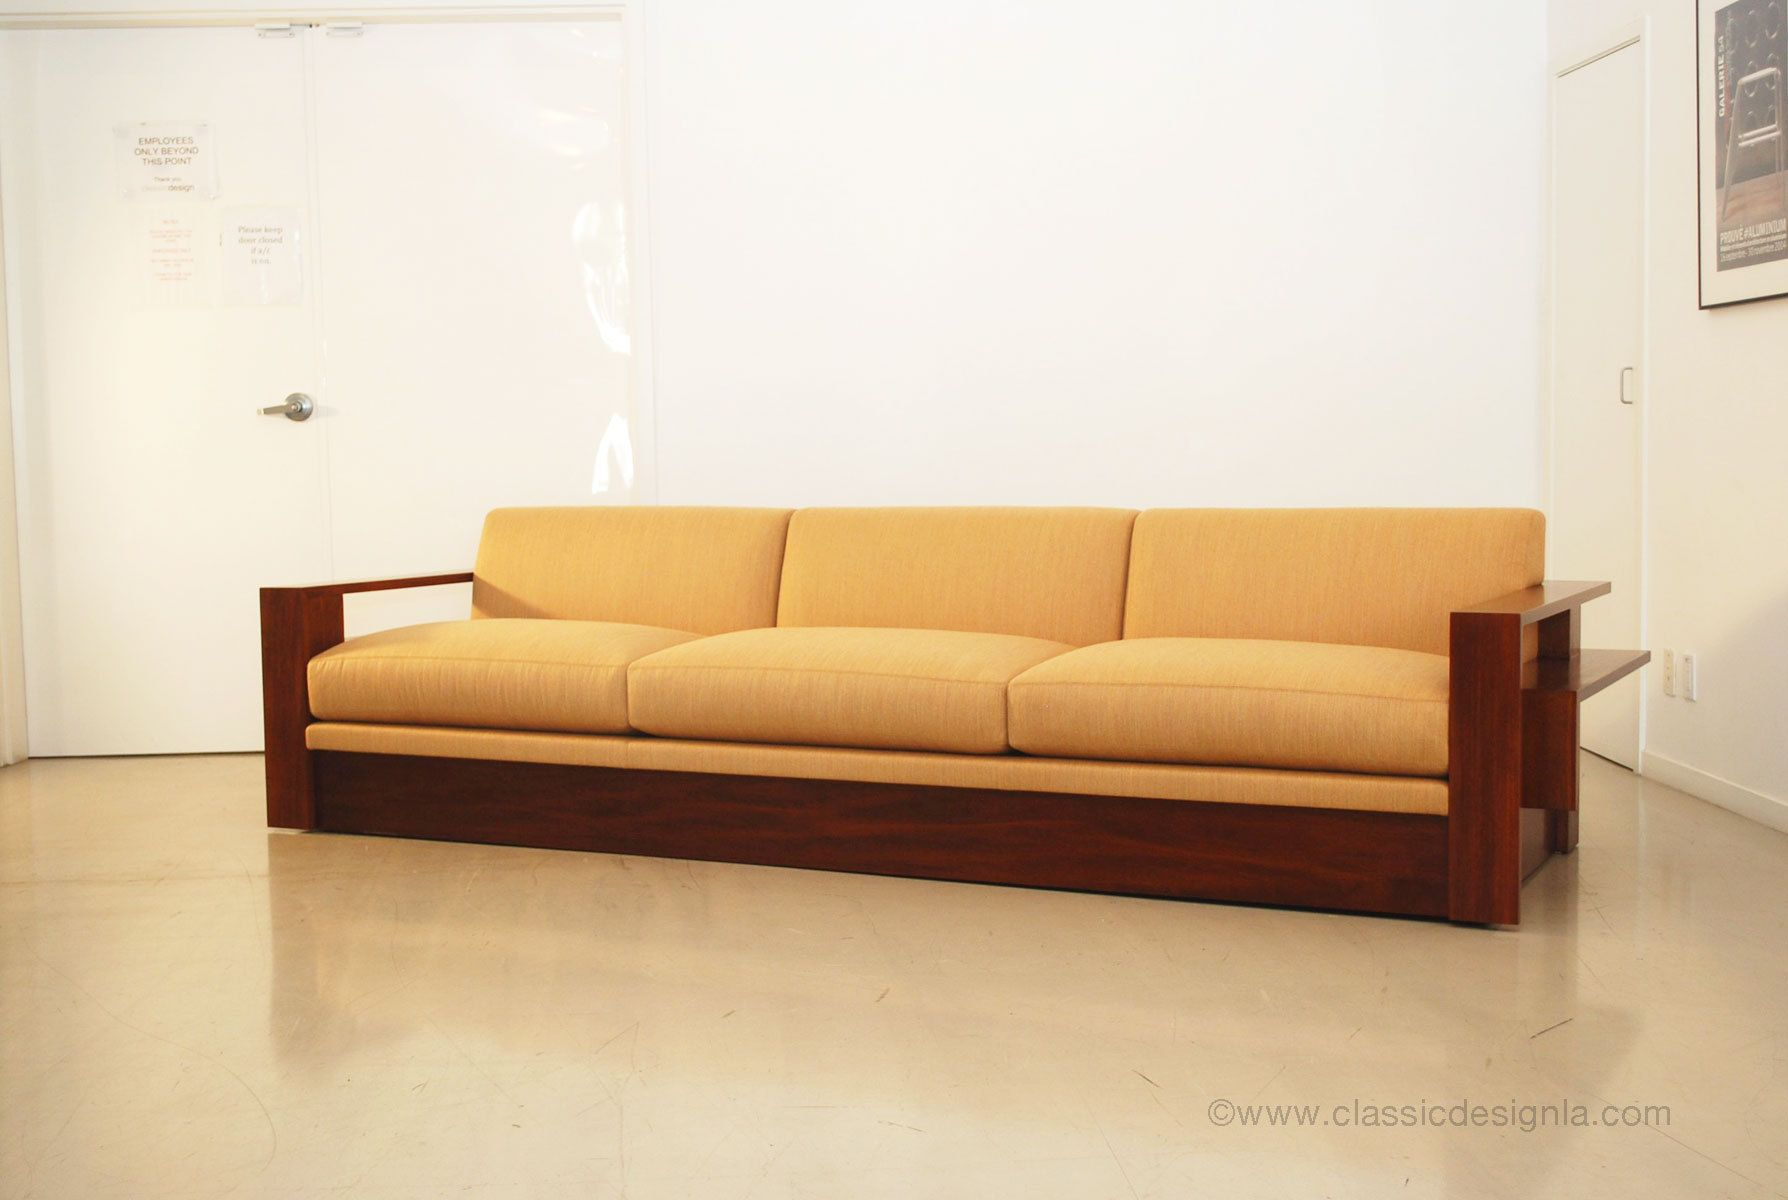 Custom Wood Frame Sofa Google Search Wood Frame Sofas: new couch designs